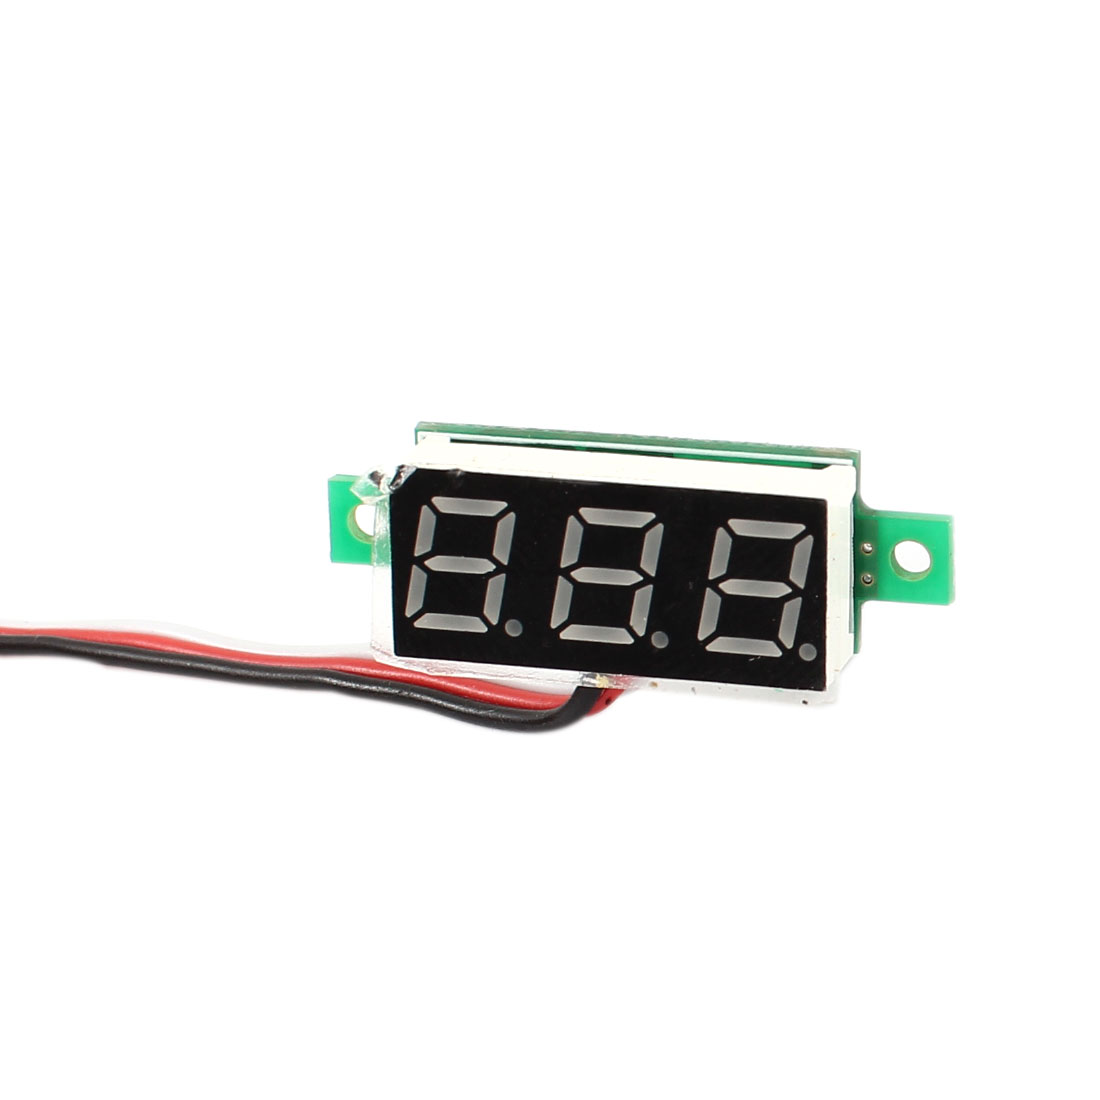 DC3.0-30V 3 Digital Voltmeter Blue LED Display Volt Tester Panel Meter Guage